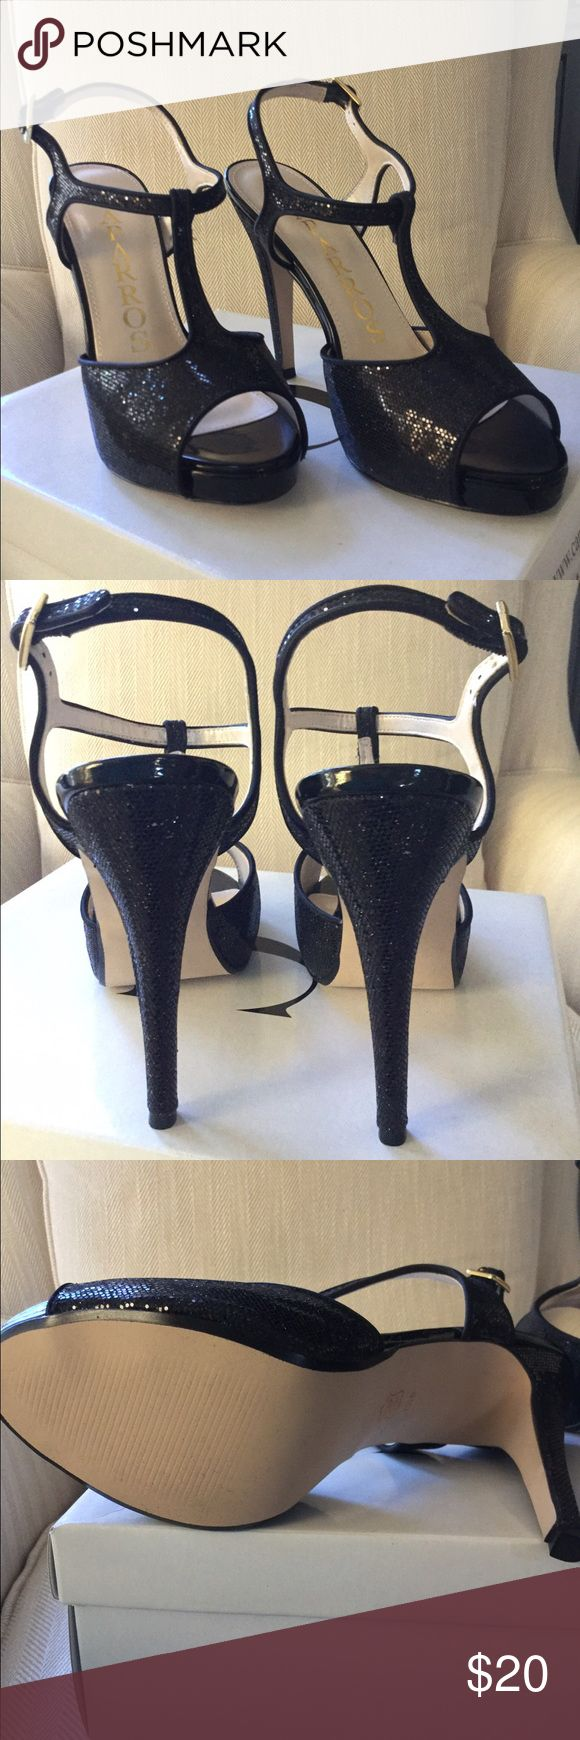 """T-Strap platform black special occasion shoes NWB Caparros Daria special occasion shoes. Size 7.5m. New with Box. Black sparkly T-Strap with small platform. 4.5"""" heel with .5"""" platform. Caparros Shoes Heels"""